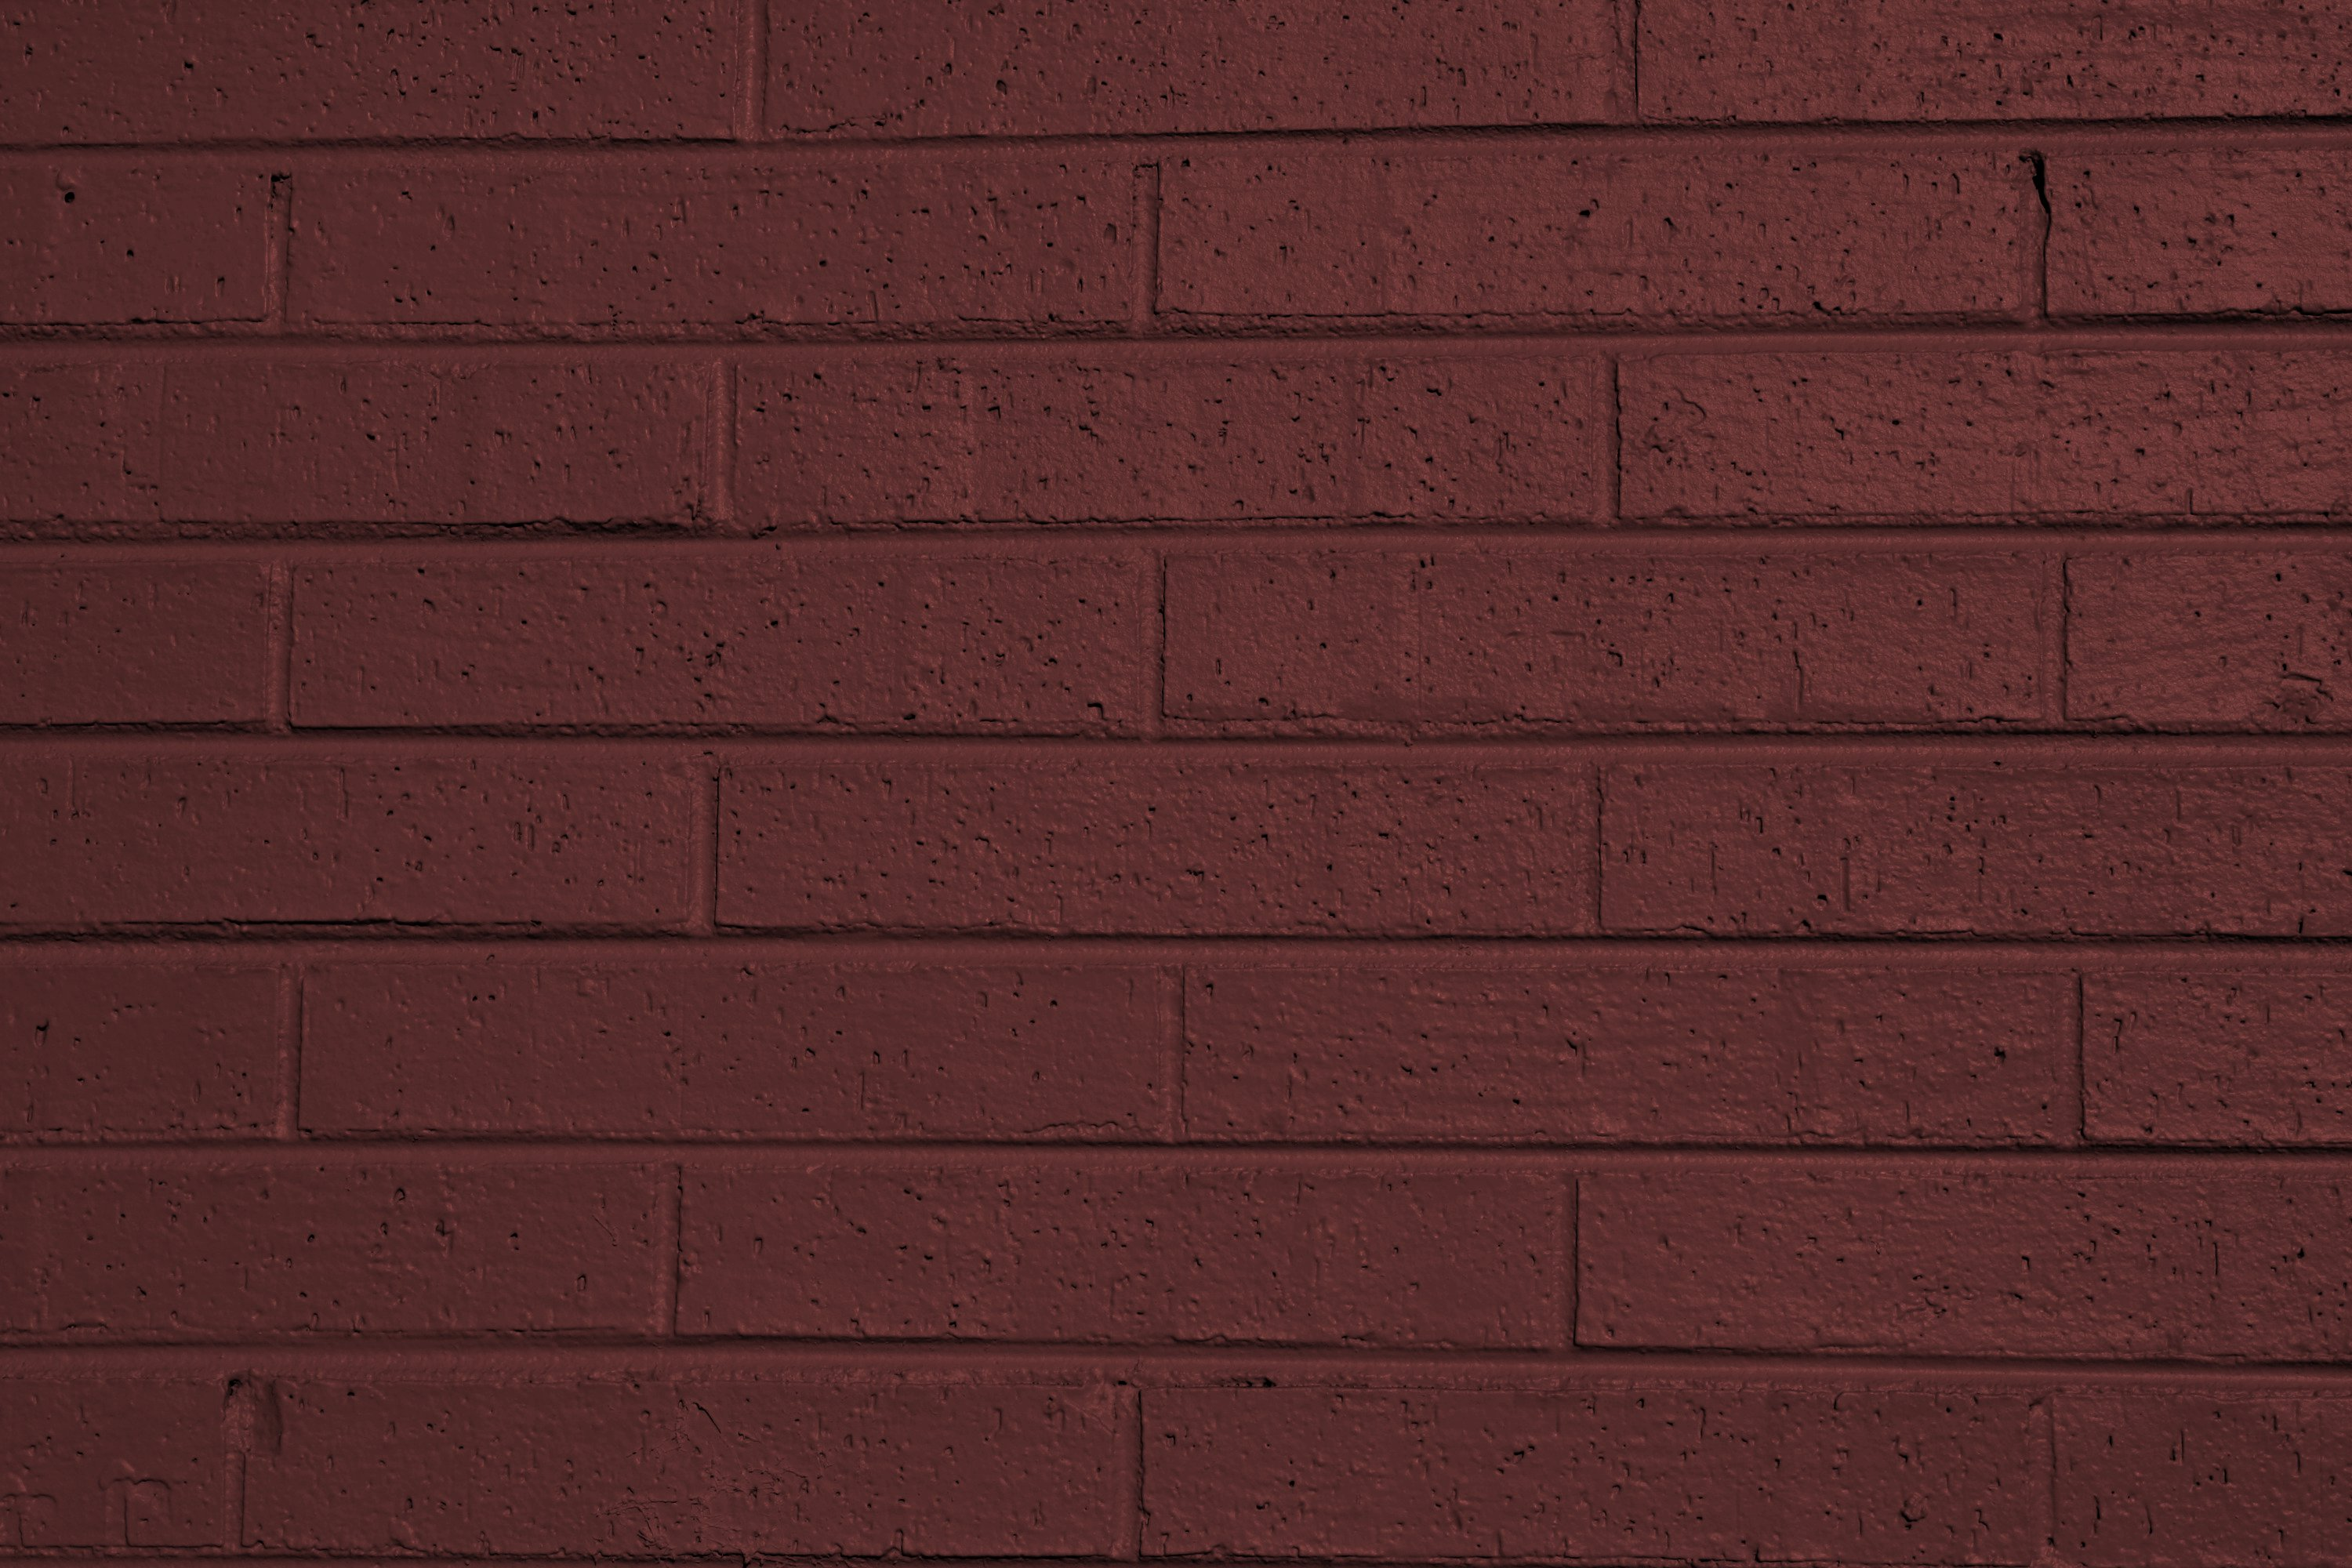 brownish red painted brick wall texture picture | free photograph